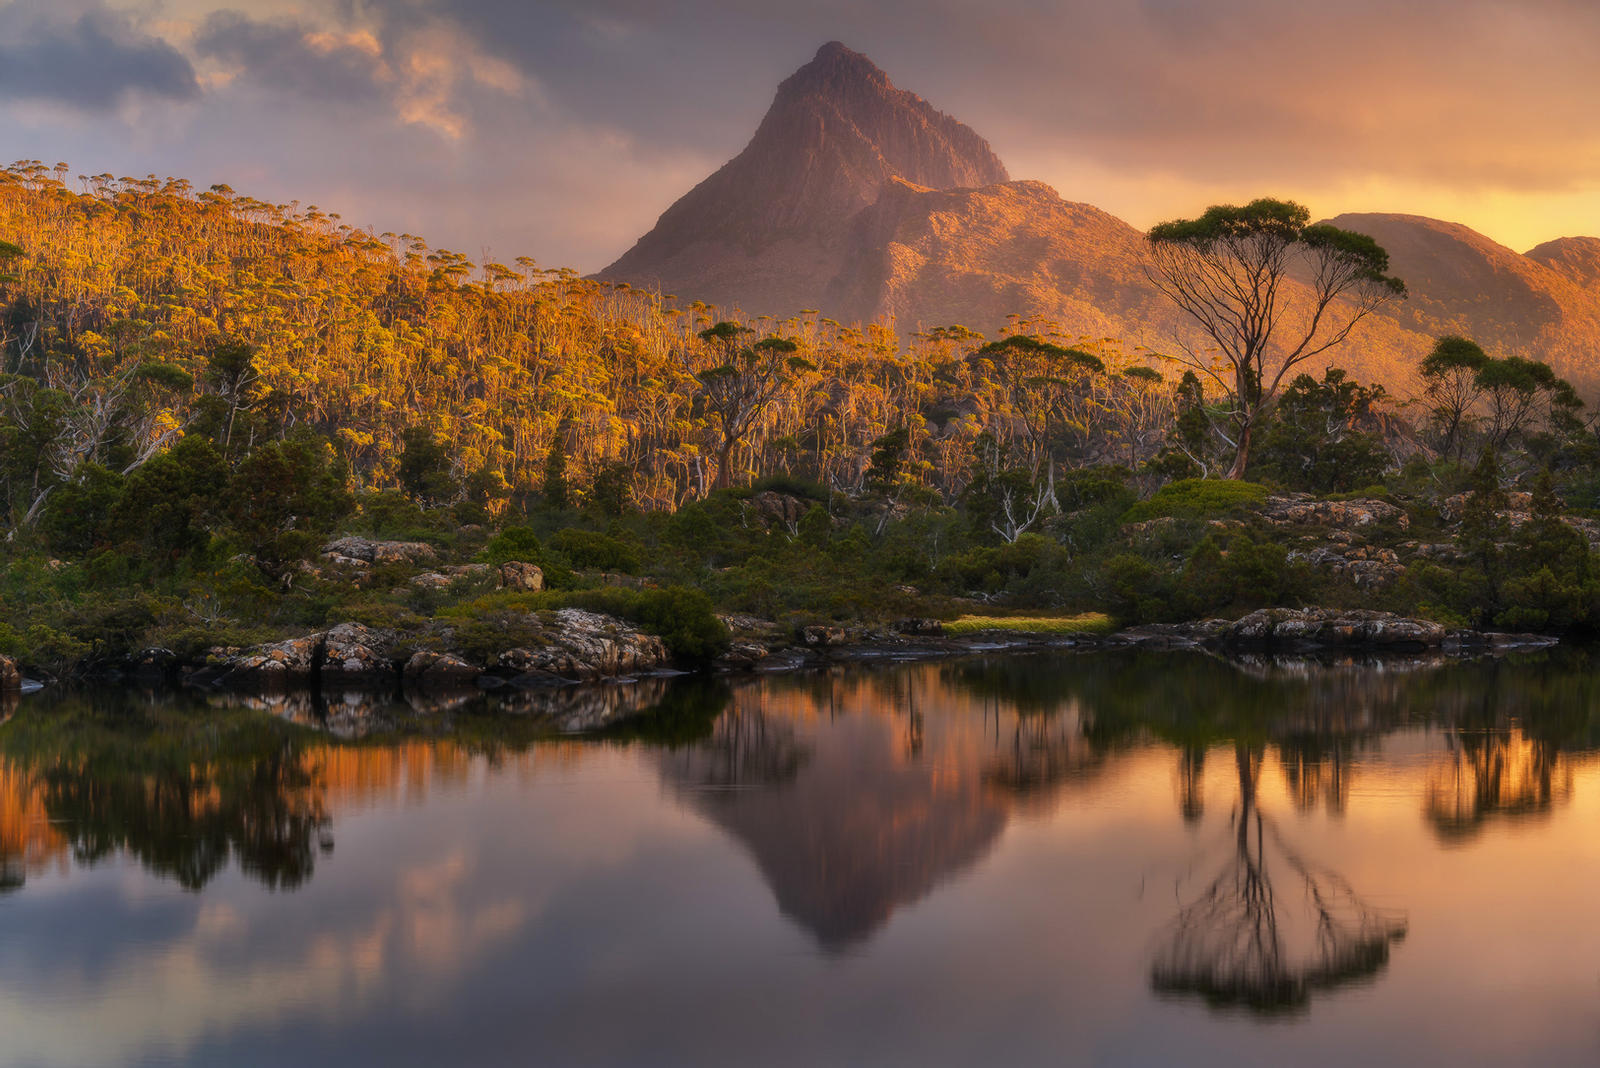 lanscape photography gold gould by everlook photography